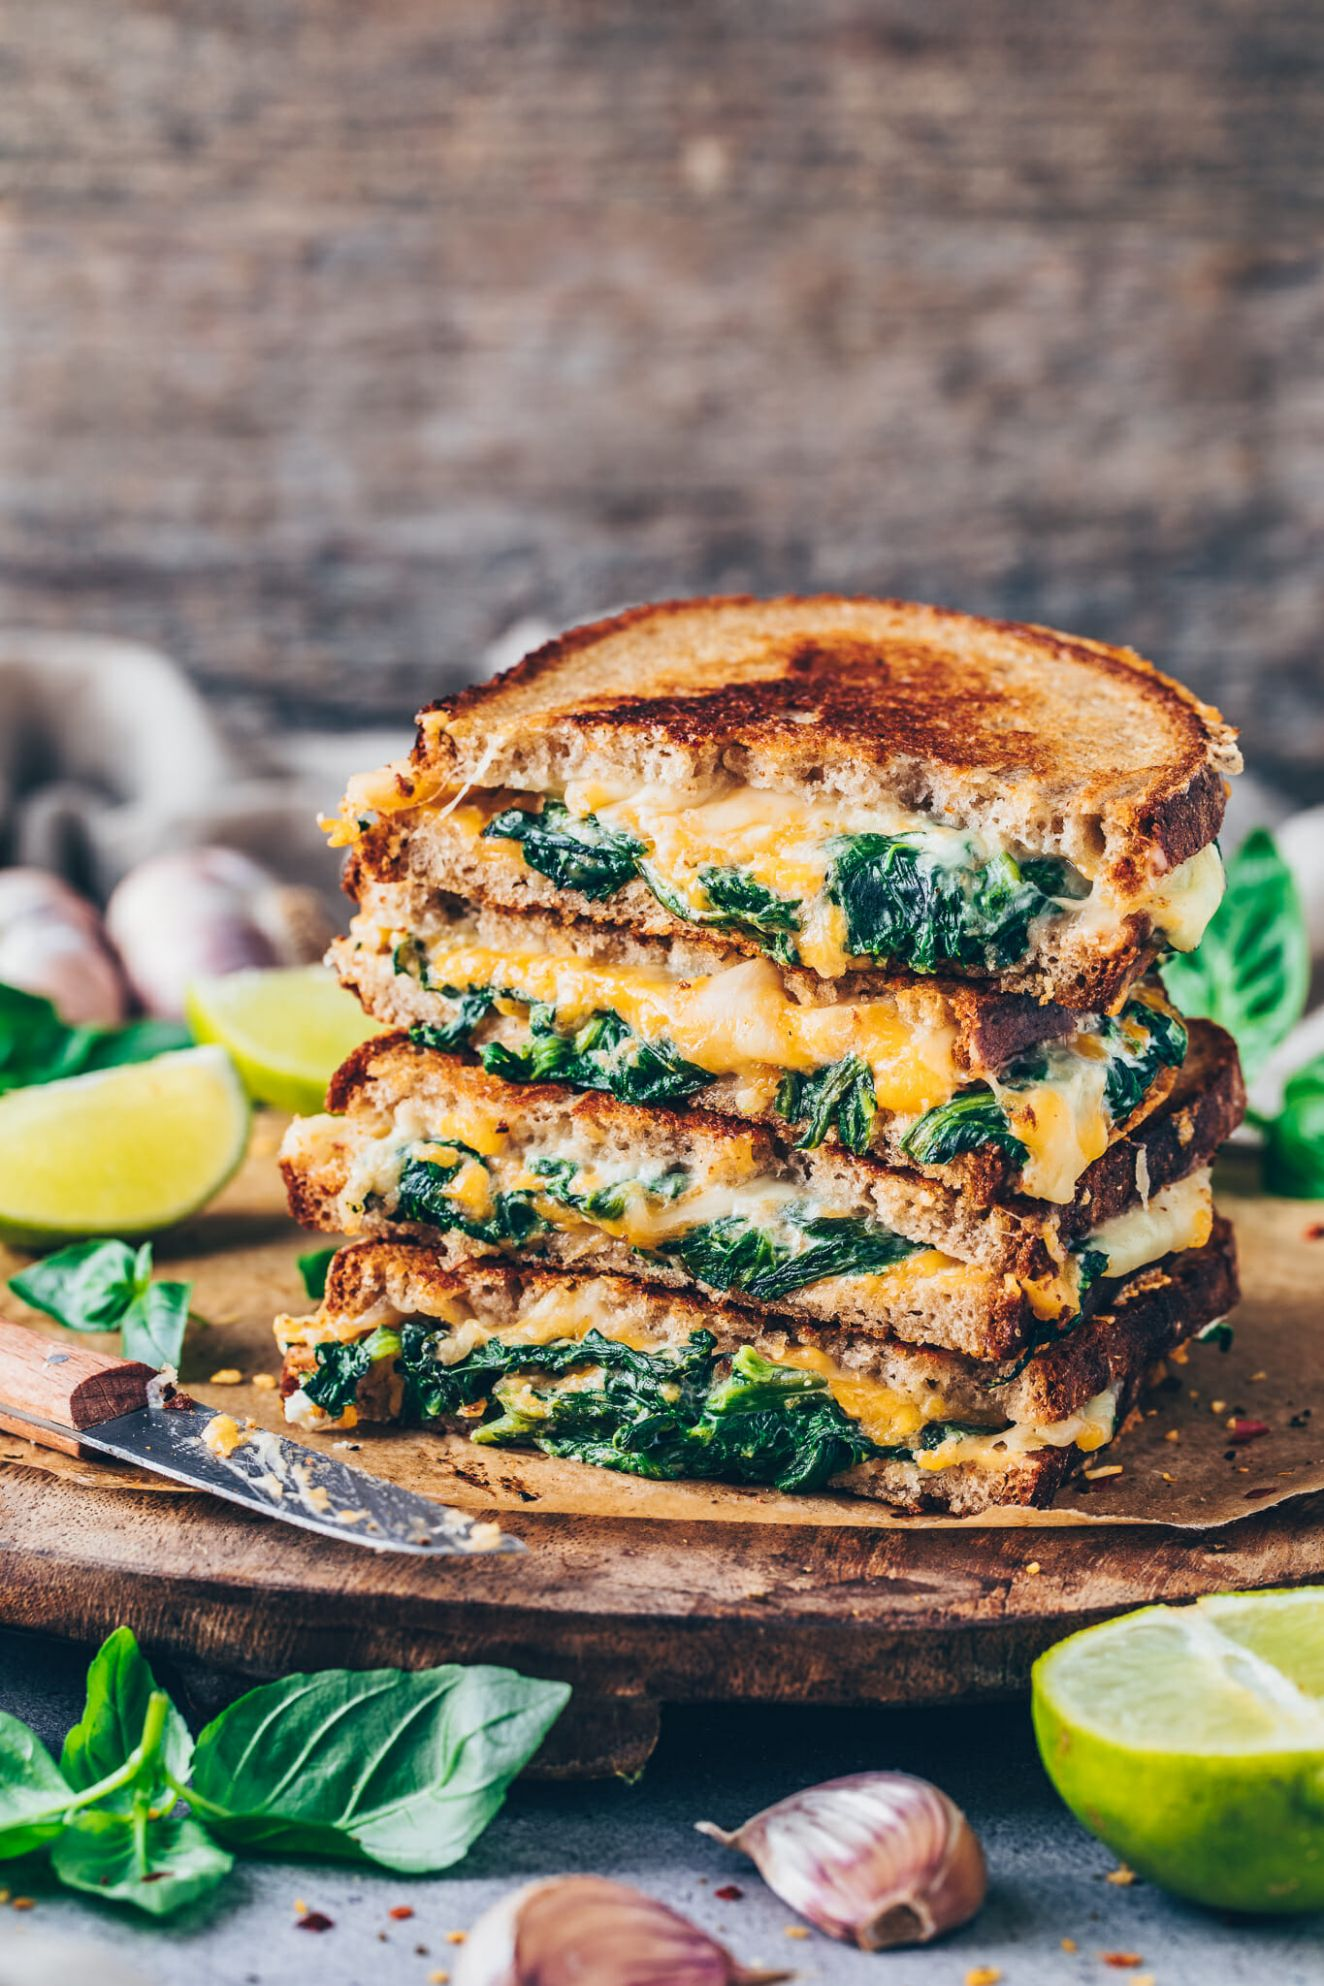 Vegan Grilled Cheese Sandwich - Sandwich Recipe Notes